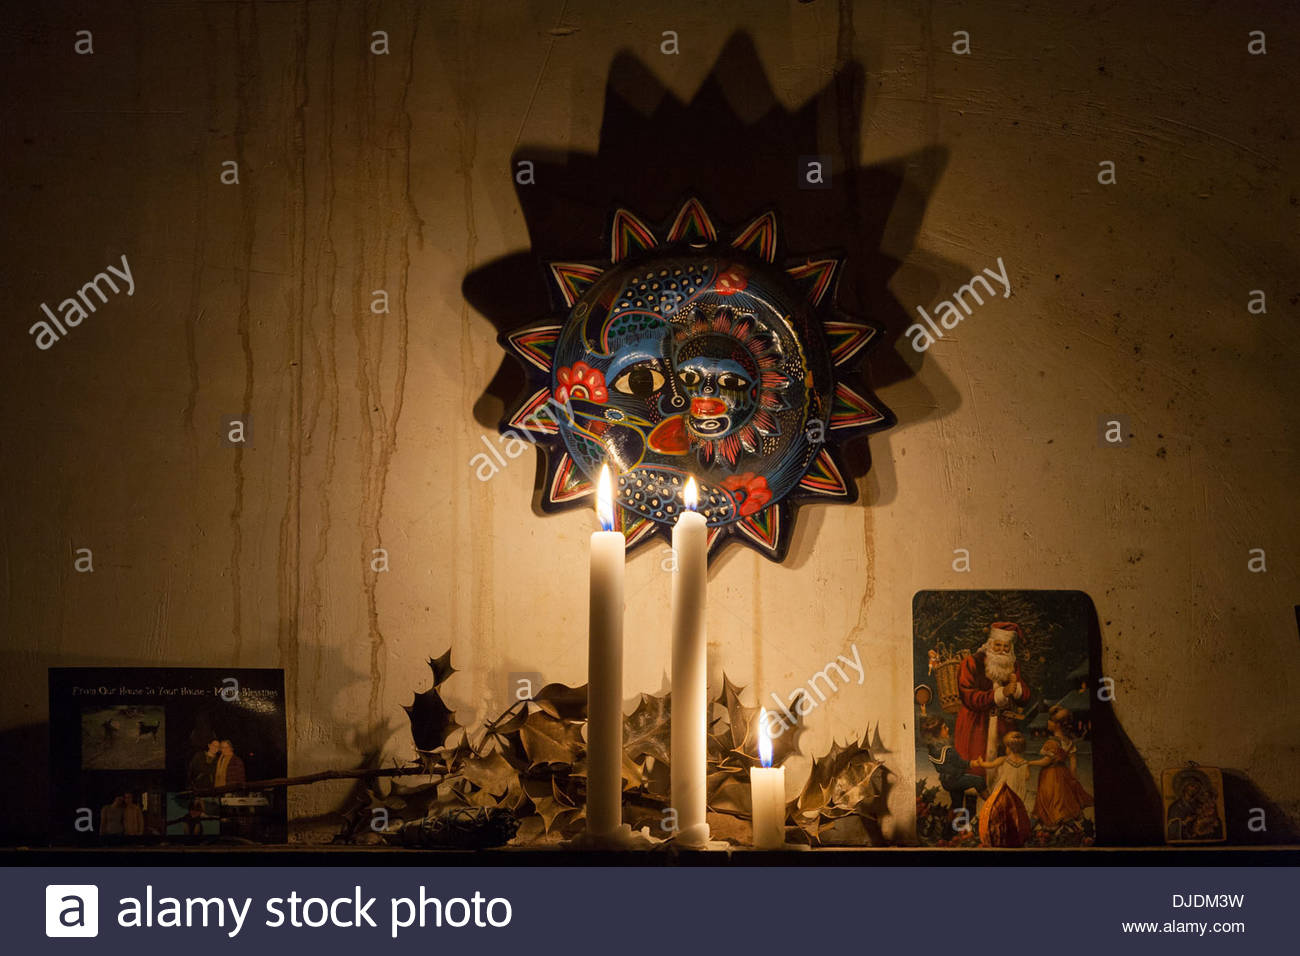 Lit candles on a mantle in an old French farmhouse - Stock Image